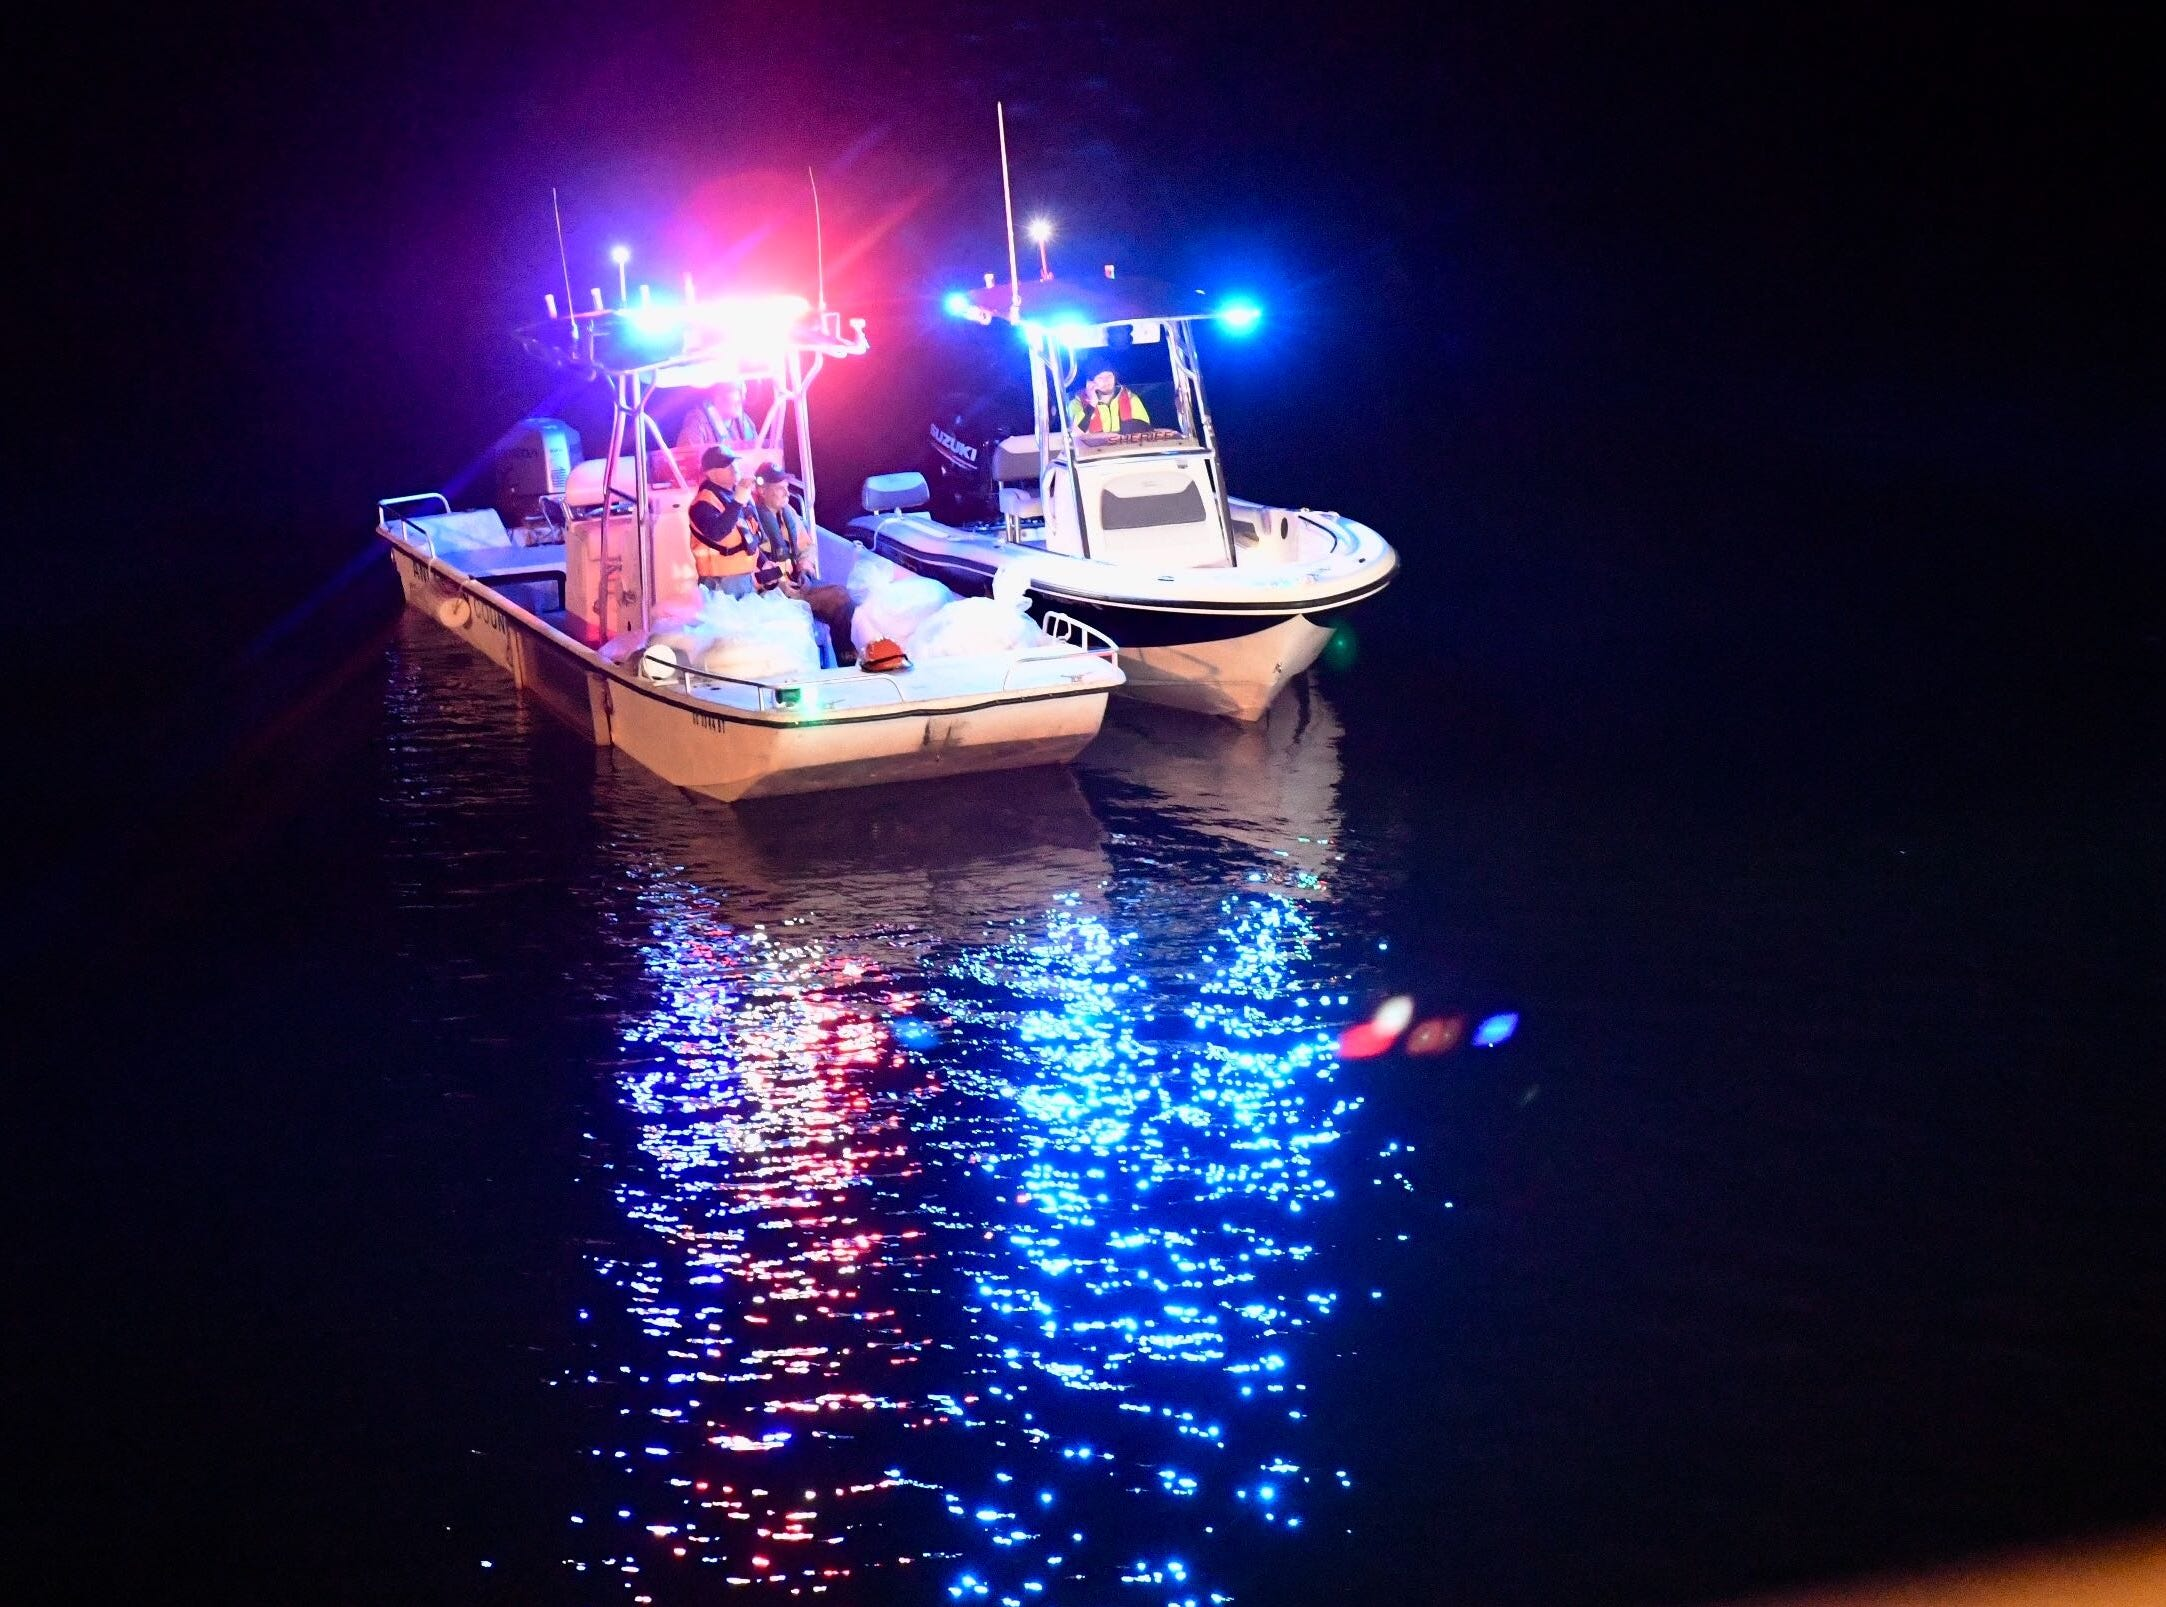 Anderson County Hazardous Materials boats on Lake Hartwell in Anderson near the 18- wheeler wreck on Monday, Feb. 18, 2019.